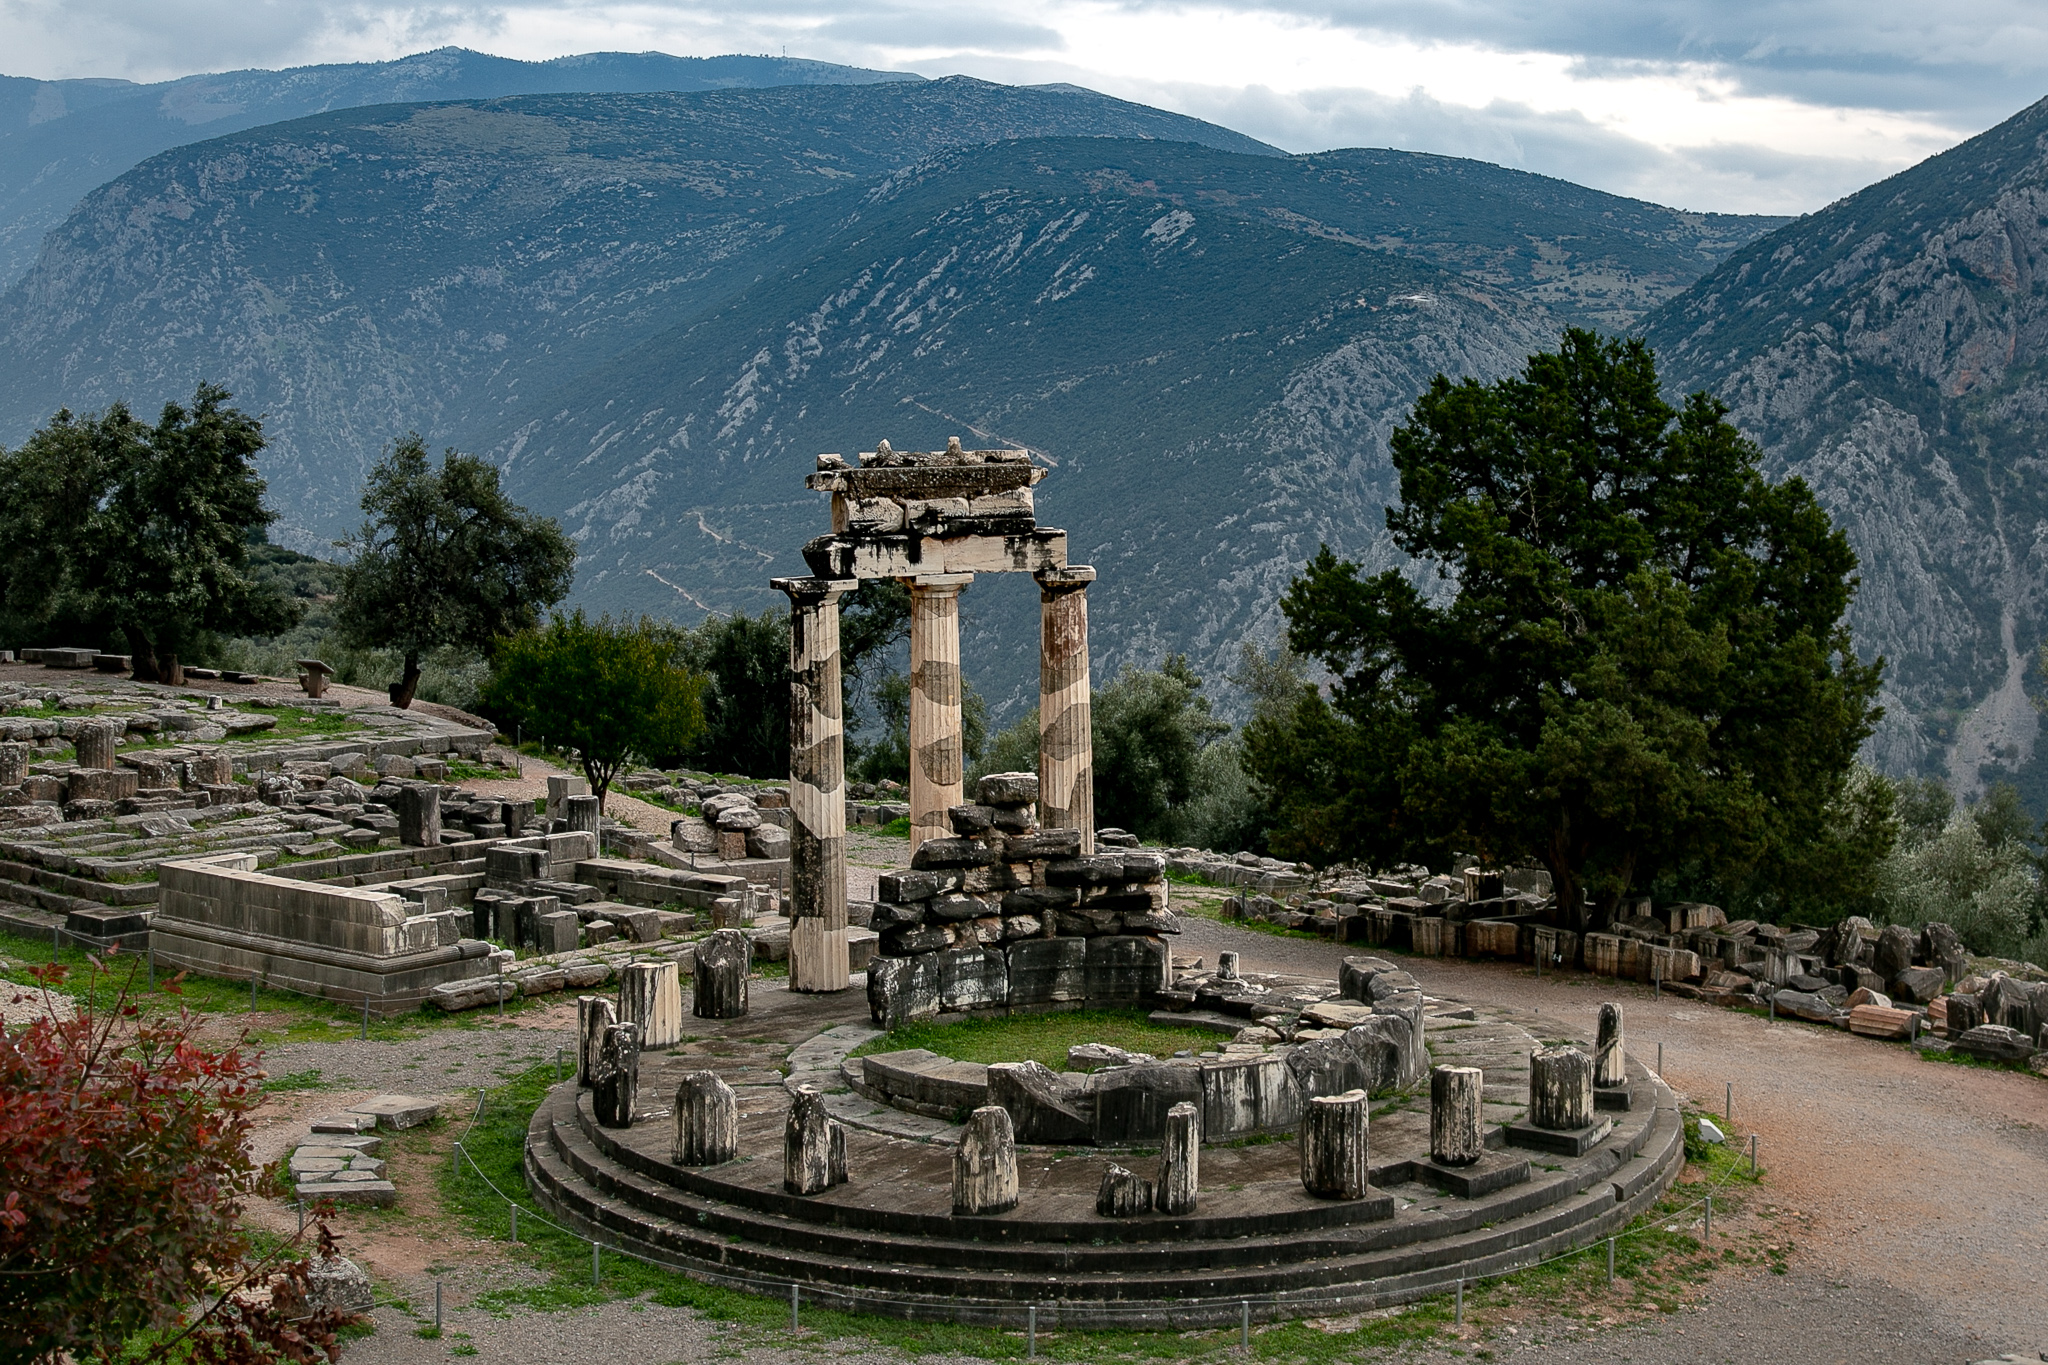 The sanctuary of Pallas Athena near Delphi, Greece © Kim I. Mott, all rights reserved